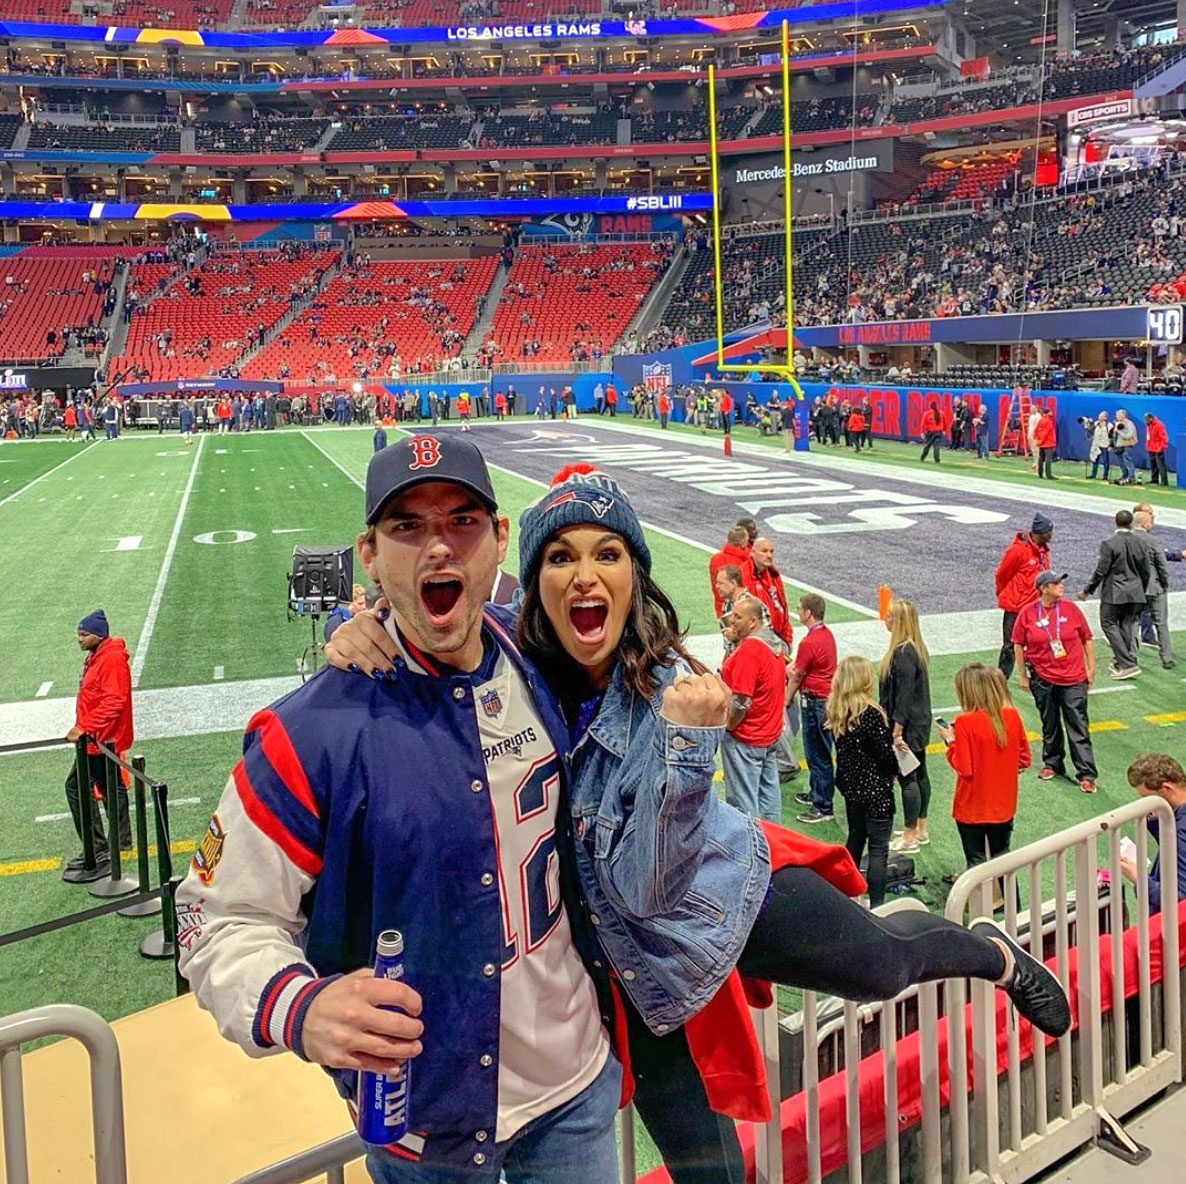 """Super-Bowl-53-Jared-Haibon-Ashley-Iaconetti - The Bachelor in Paradise stars cheered on the Patriots. """"Seventeen years ago to the day, I was over my uncles house watching Tom Brady and the Patriots beat the Rams to win their first Super Bowl,"""" Haibon wrote on Instagram."""